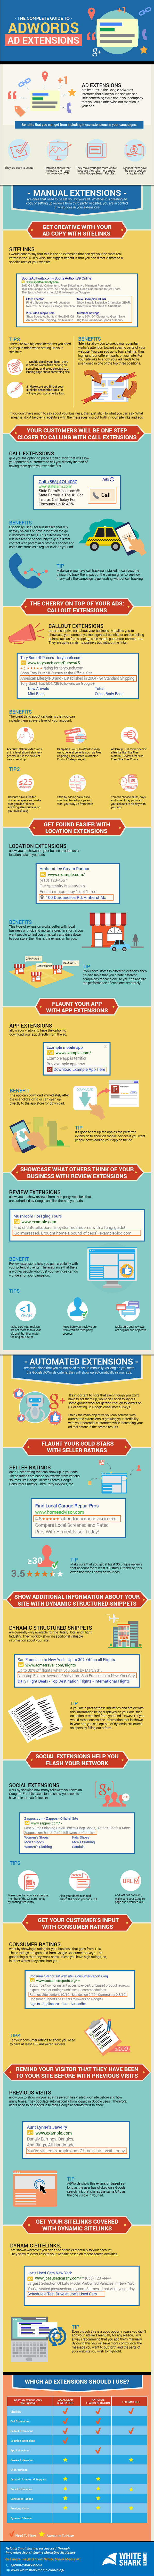 Google Adwords Ad Extensions Guide [Infographic]